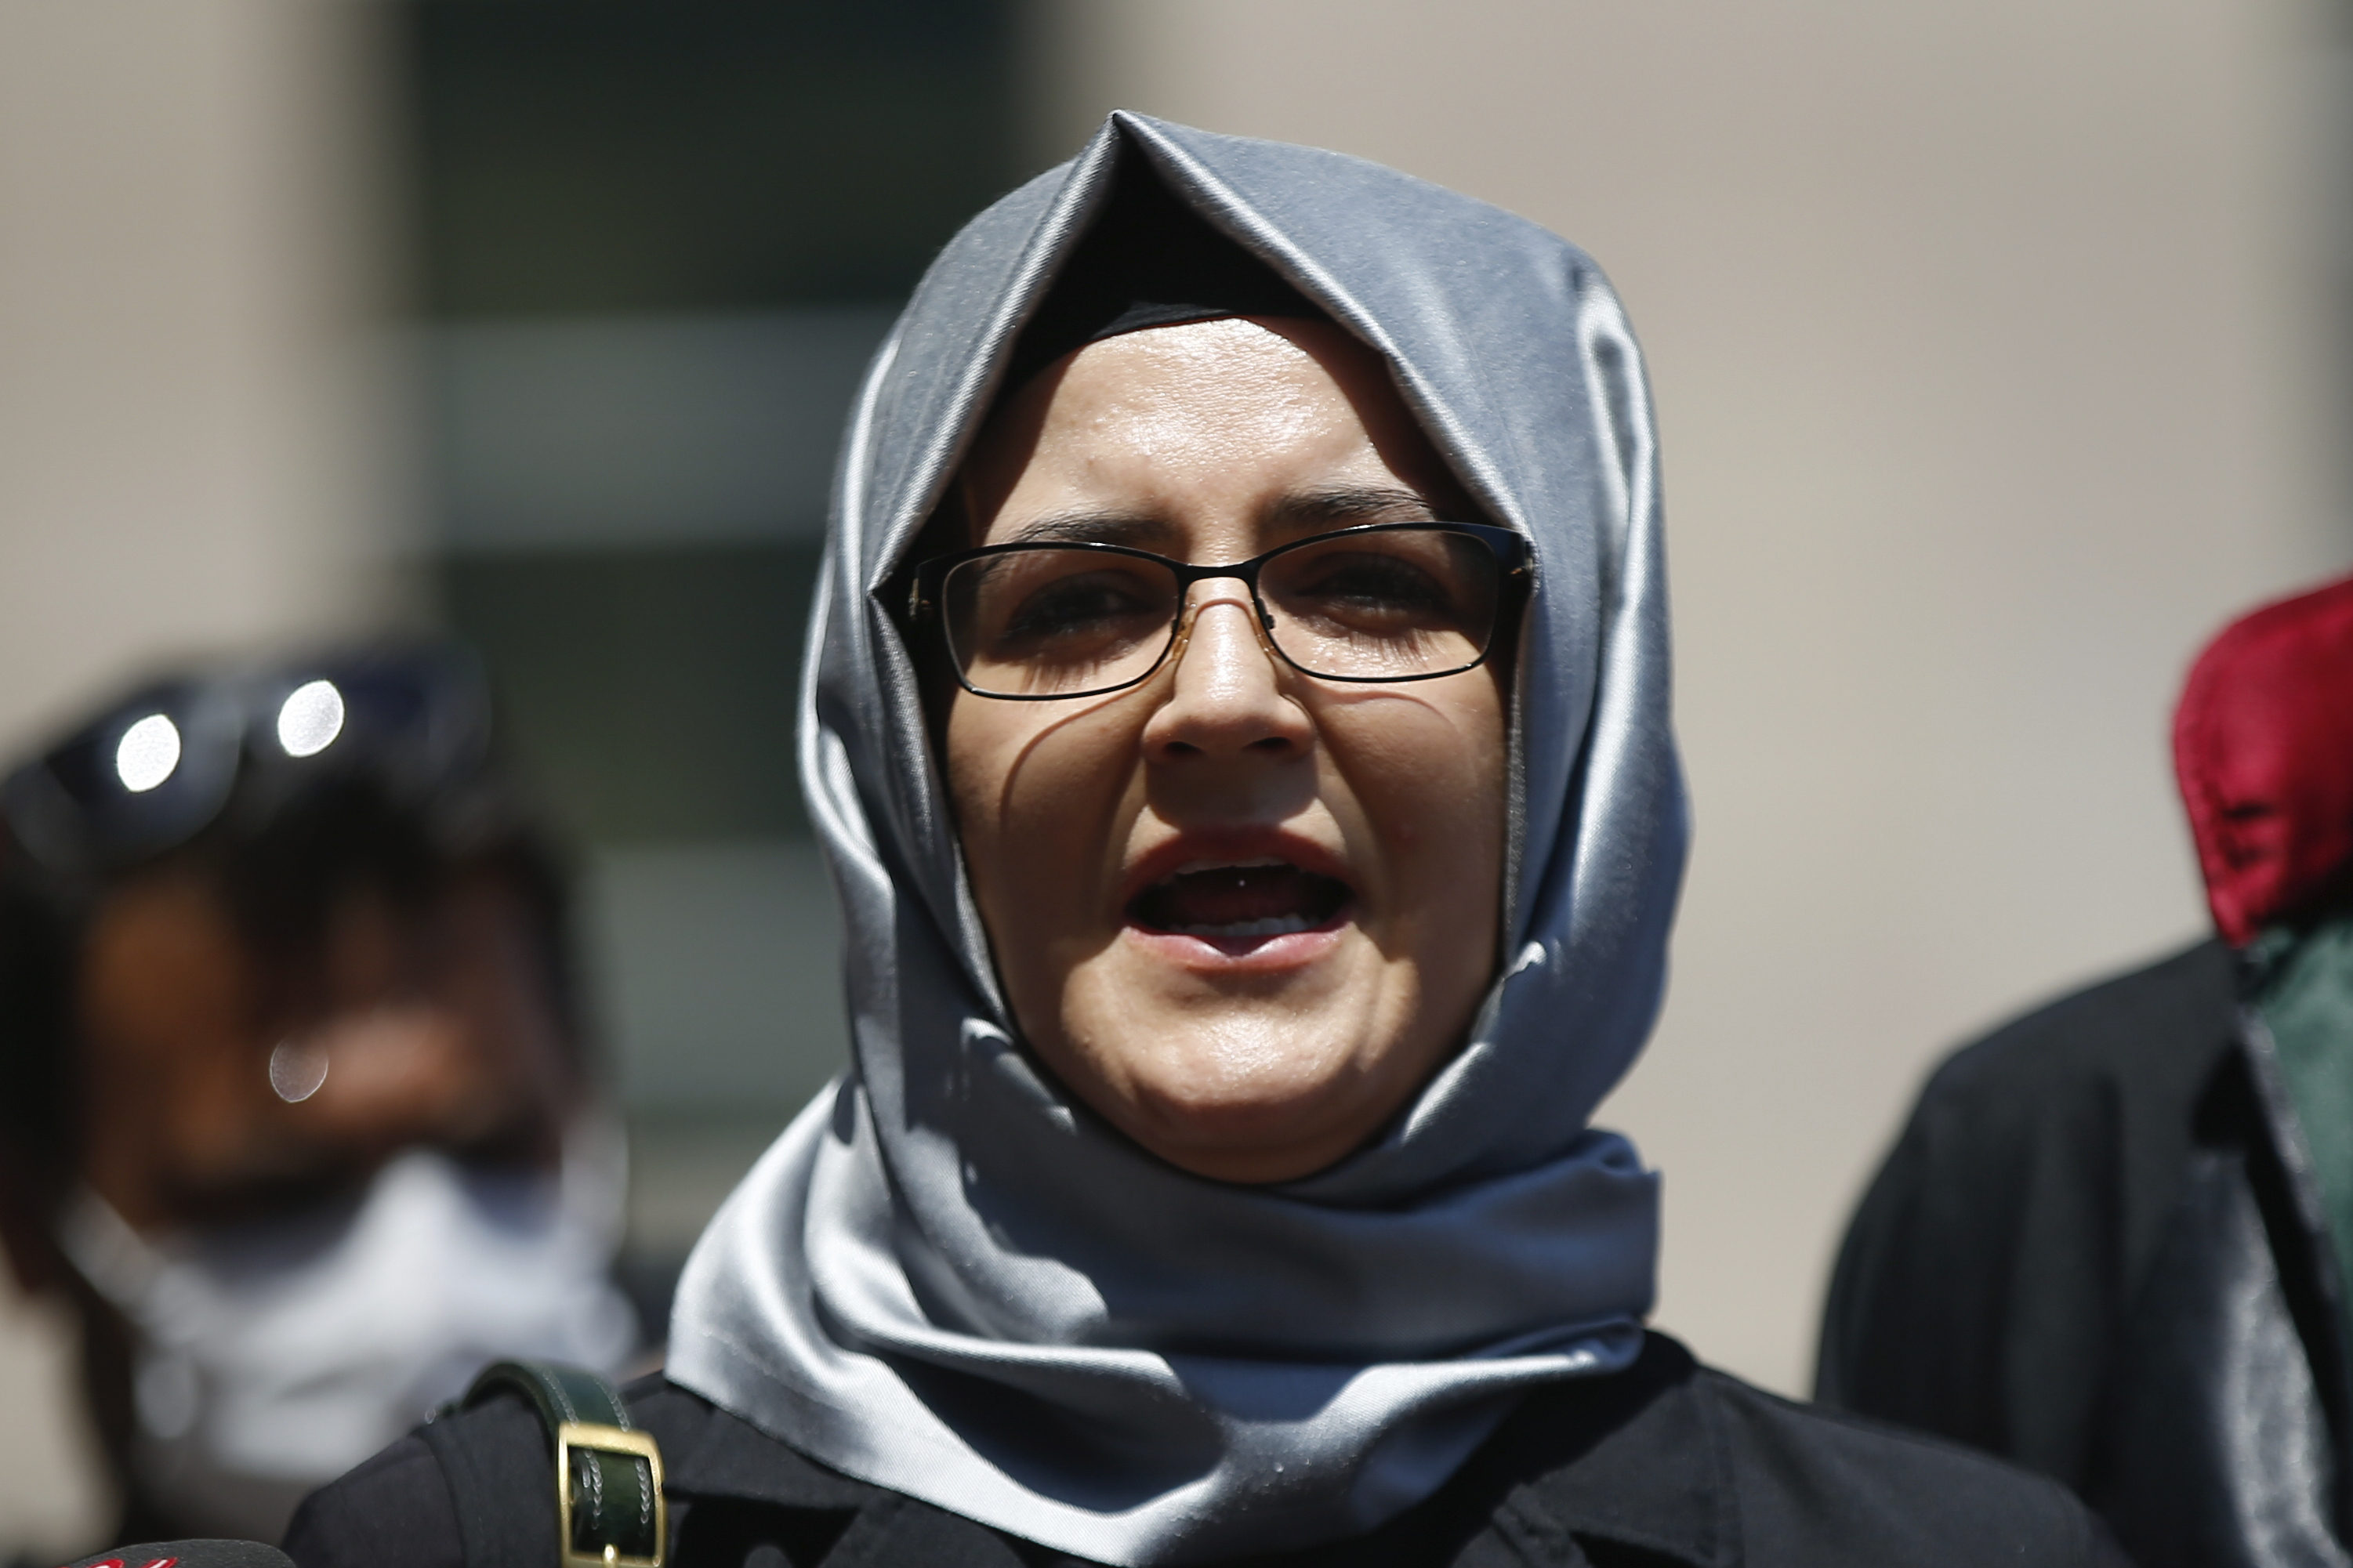 In this July 3, 2020, file photo, Hatice Cengiz, the fiancee of slain Saudi journalist Jamal Khashoggi, talks to members of the media in Istanbul. Amnesty International reported that its forensic researchers had determined that NSO Group's flagship Pegasus spyware was successfully installed on the phone of Cengiz, just four days after Khashoggi was killed.